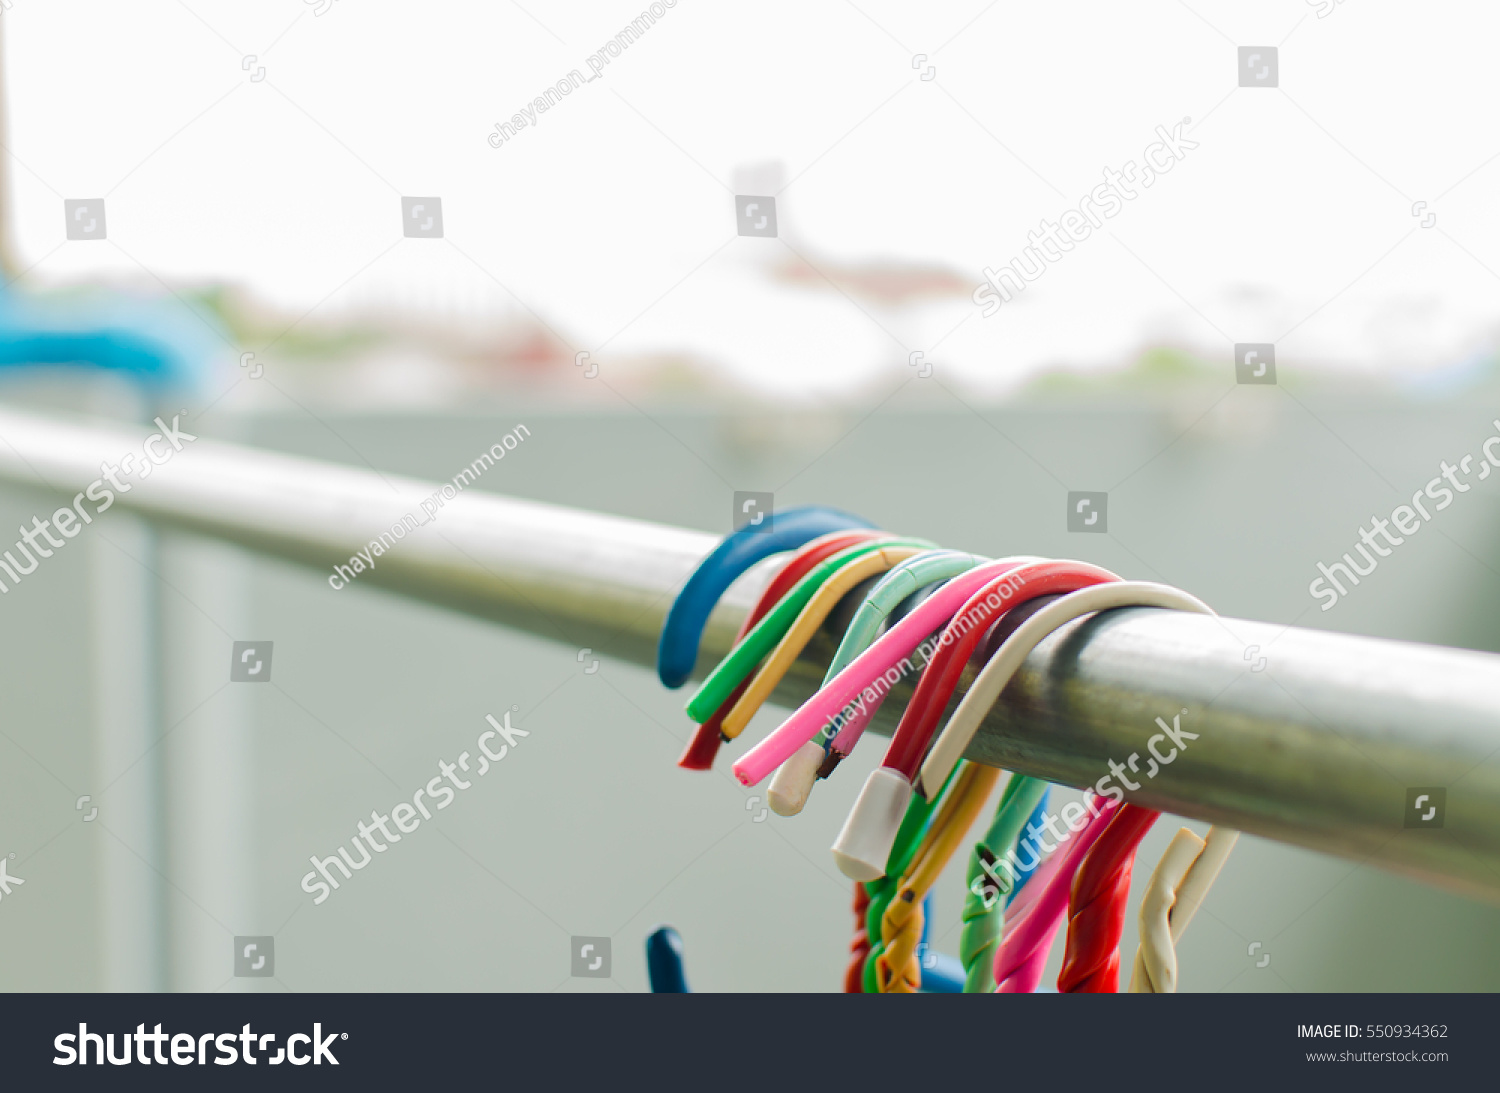 Clothes hanger on clothes line stock photo 550934362 for Clothespin photo hanger